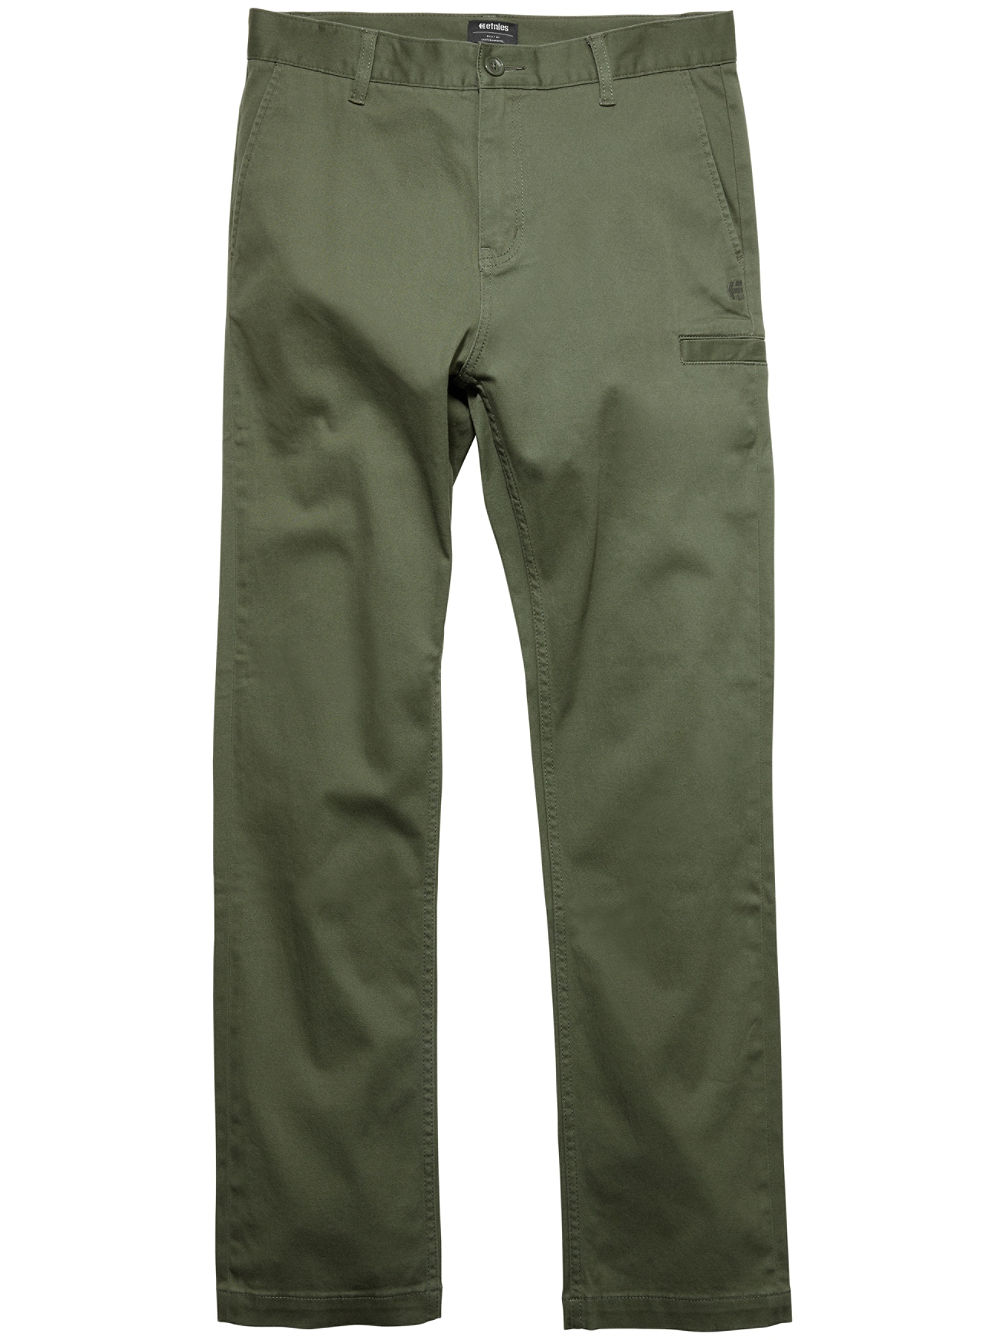 Staple Straight Chino Hose